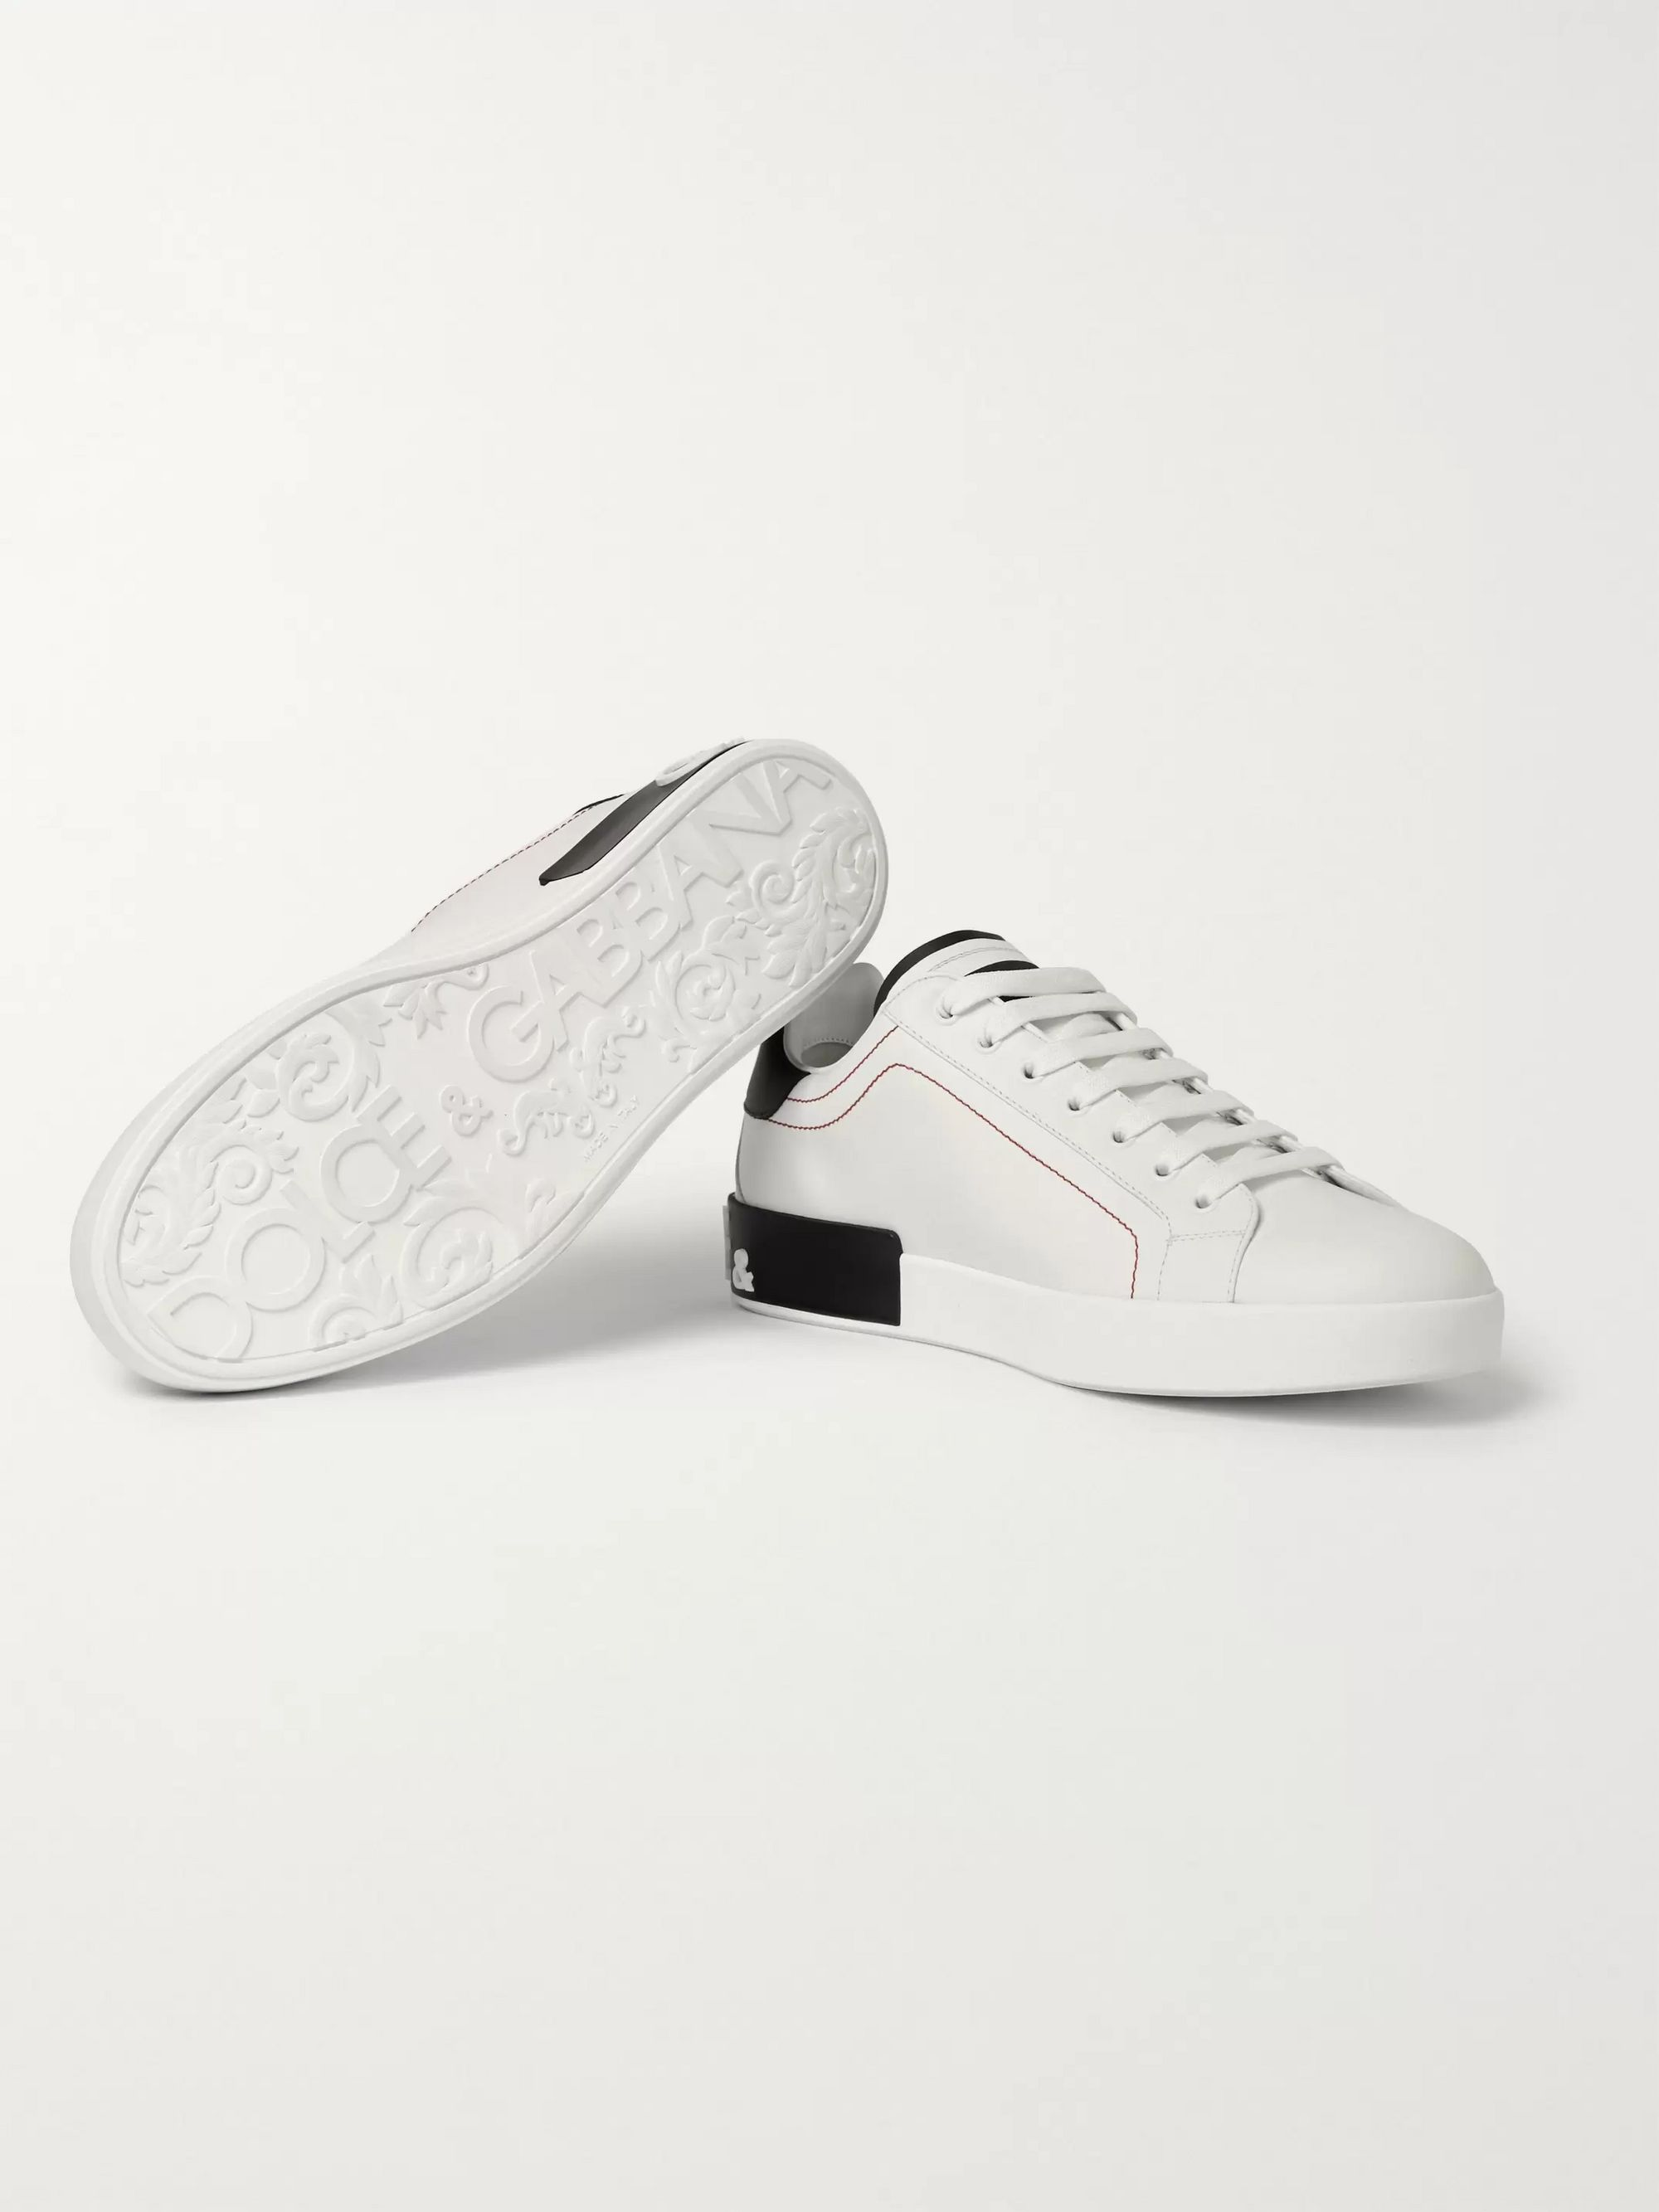 Dolce & Gabbana Portofino Logo-Detailed Leather Sneakers